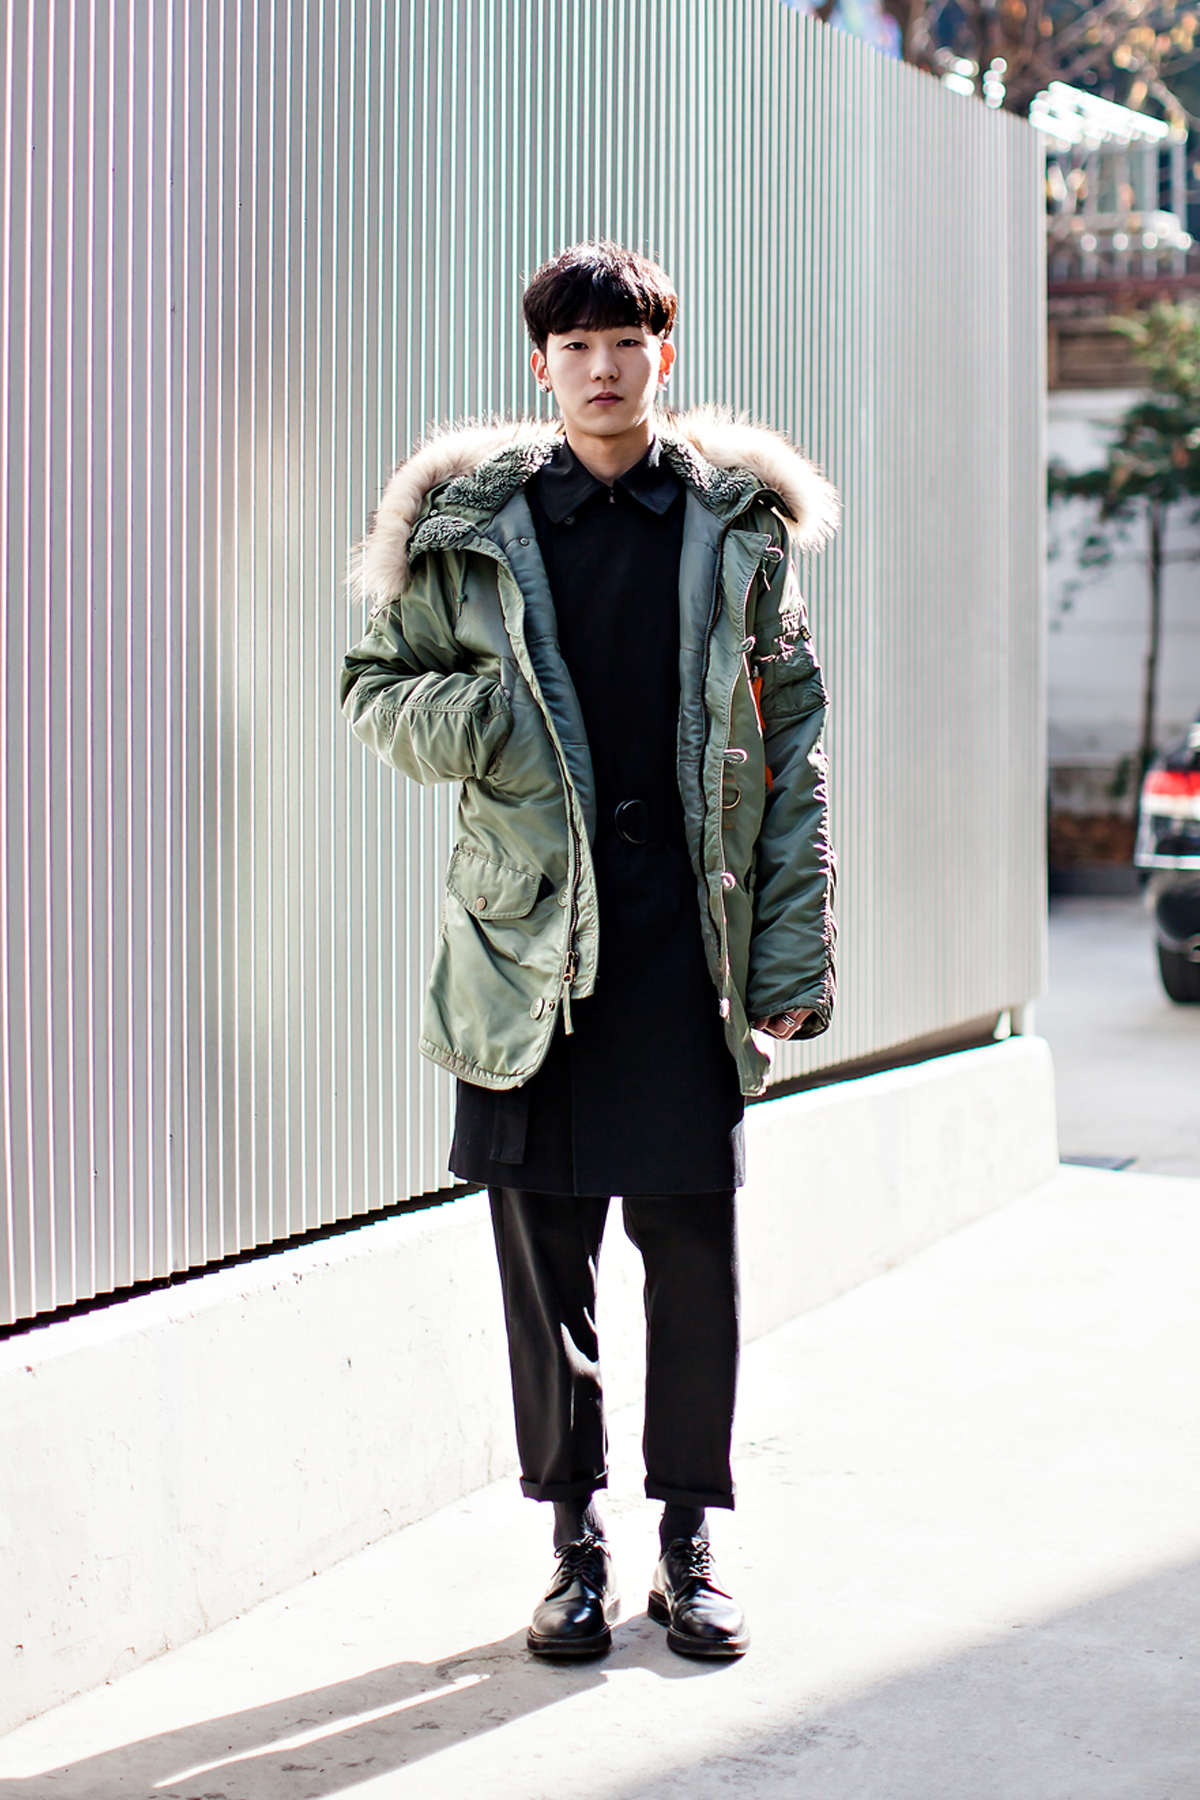 On the street… Lee Jaegeun Seoul.jpg